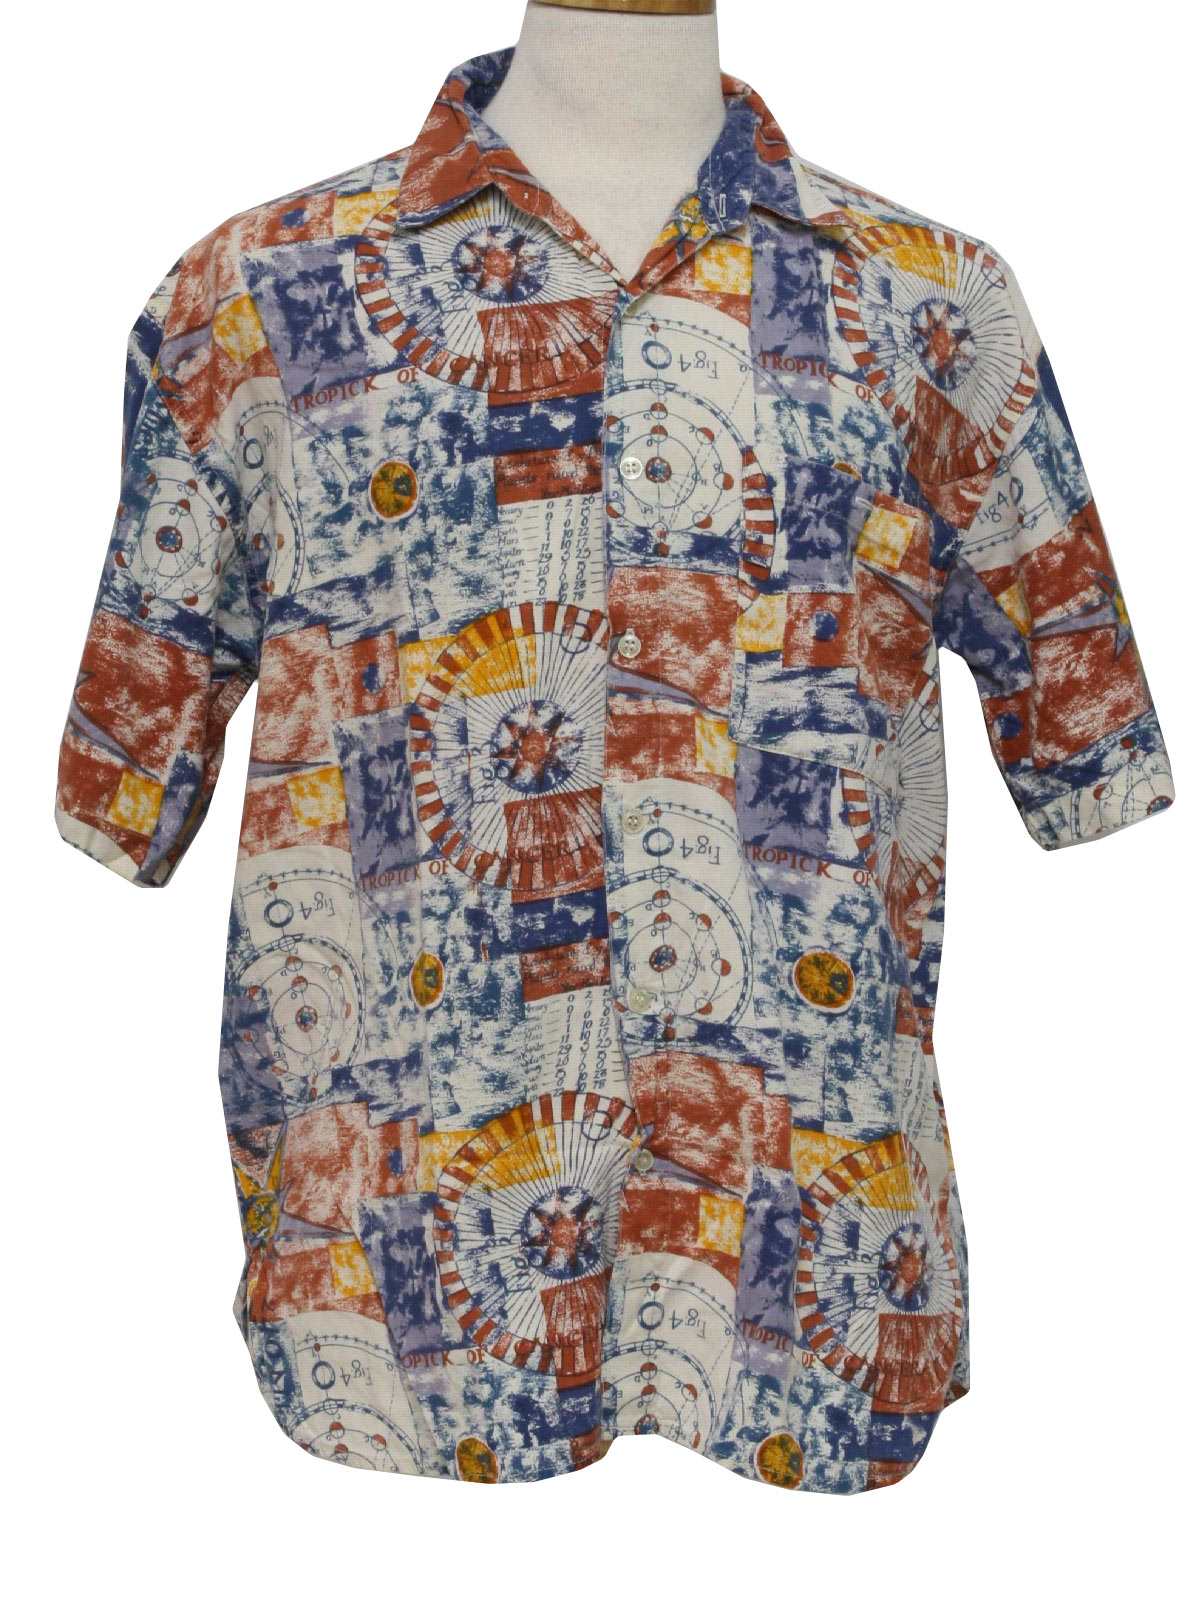 Find great deals on eBay for 90s Vintage Clothing for Men in 's Men's Clothing. Shop with confidence.